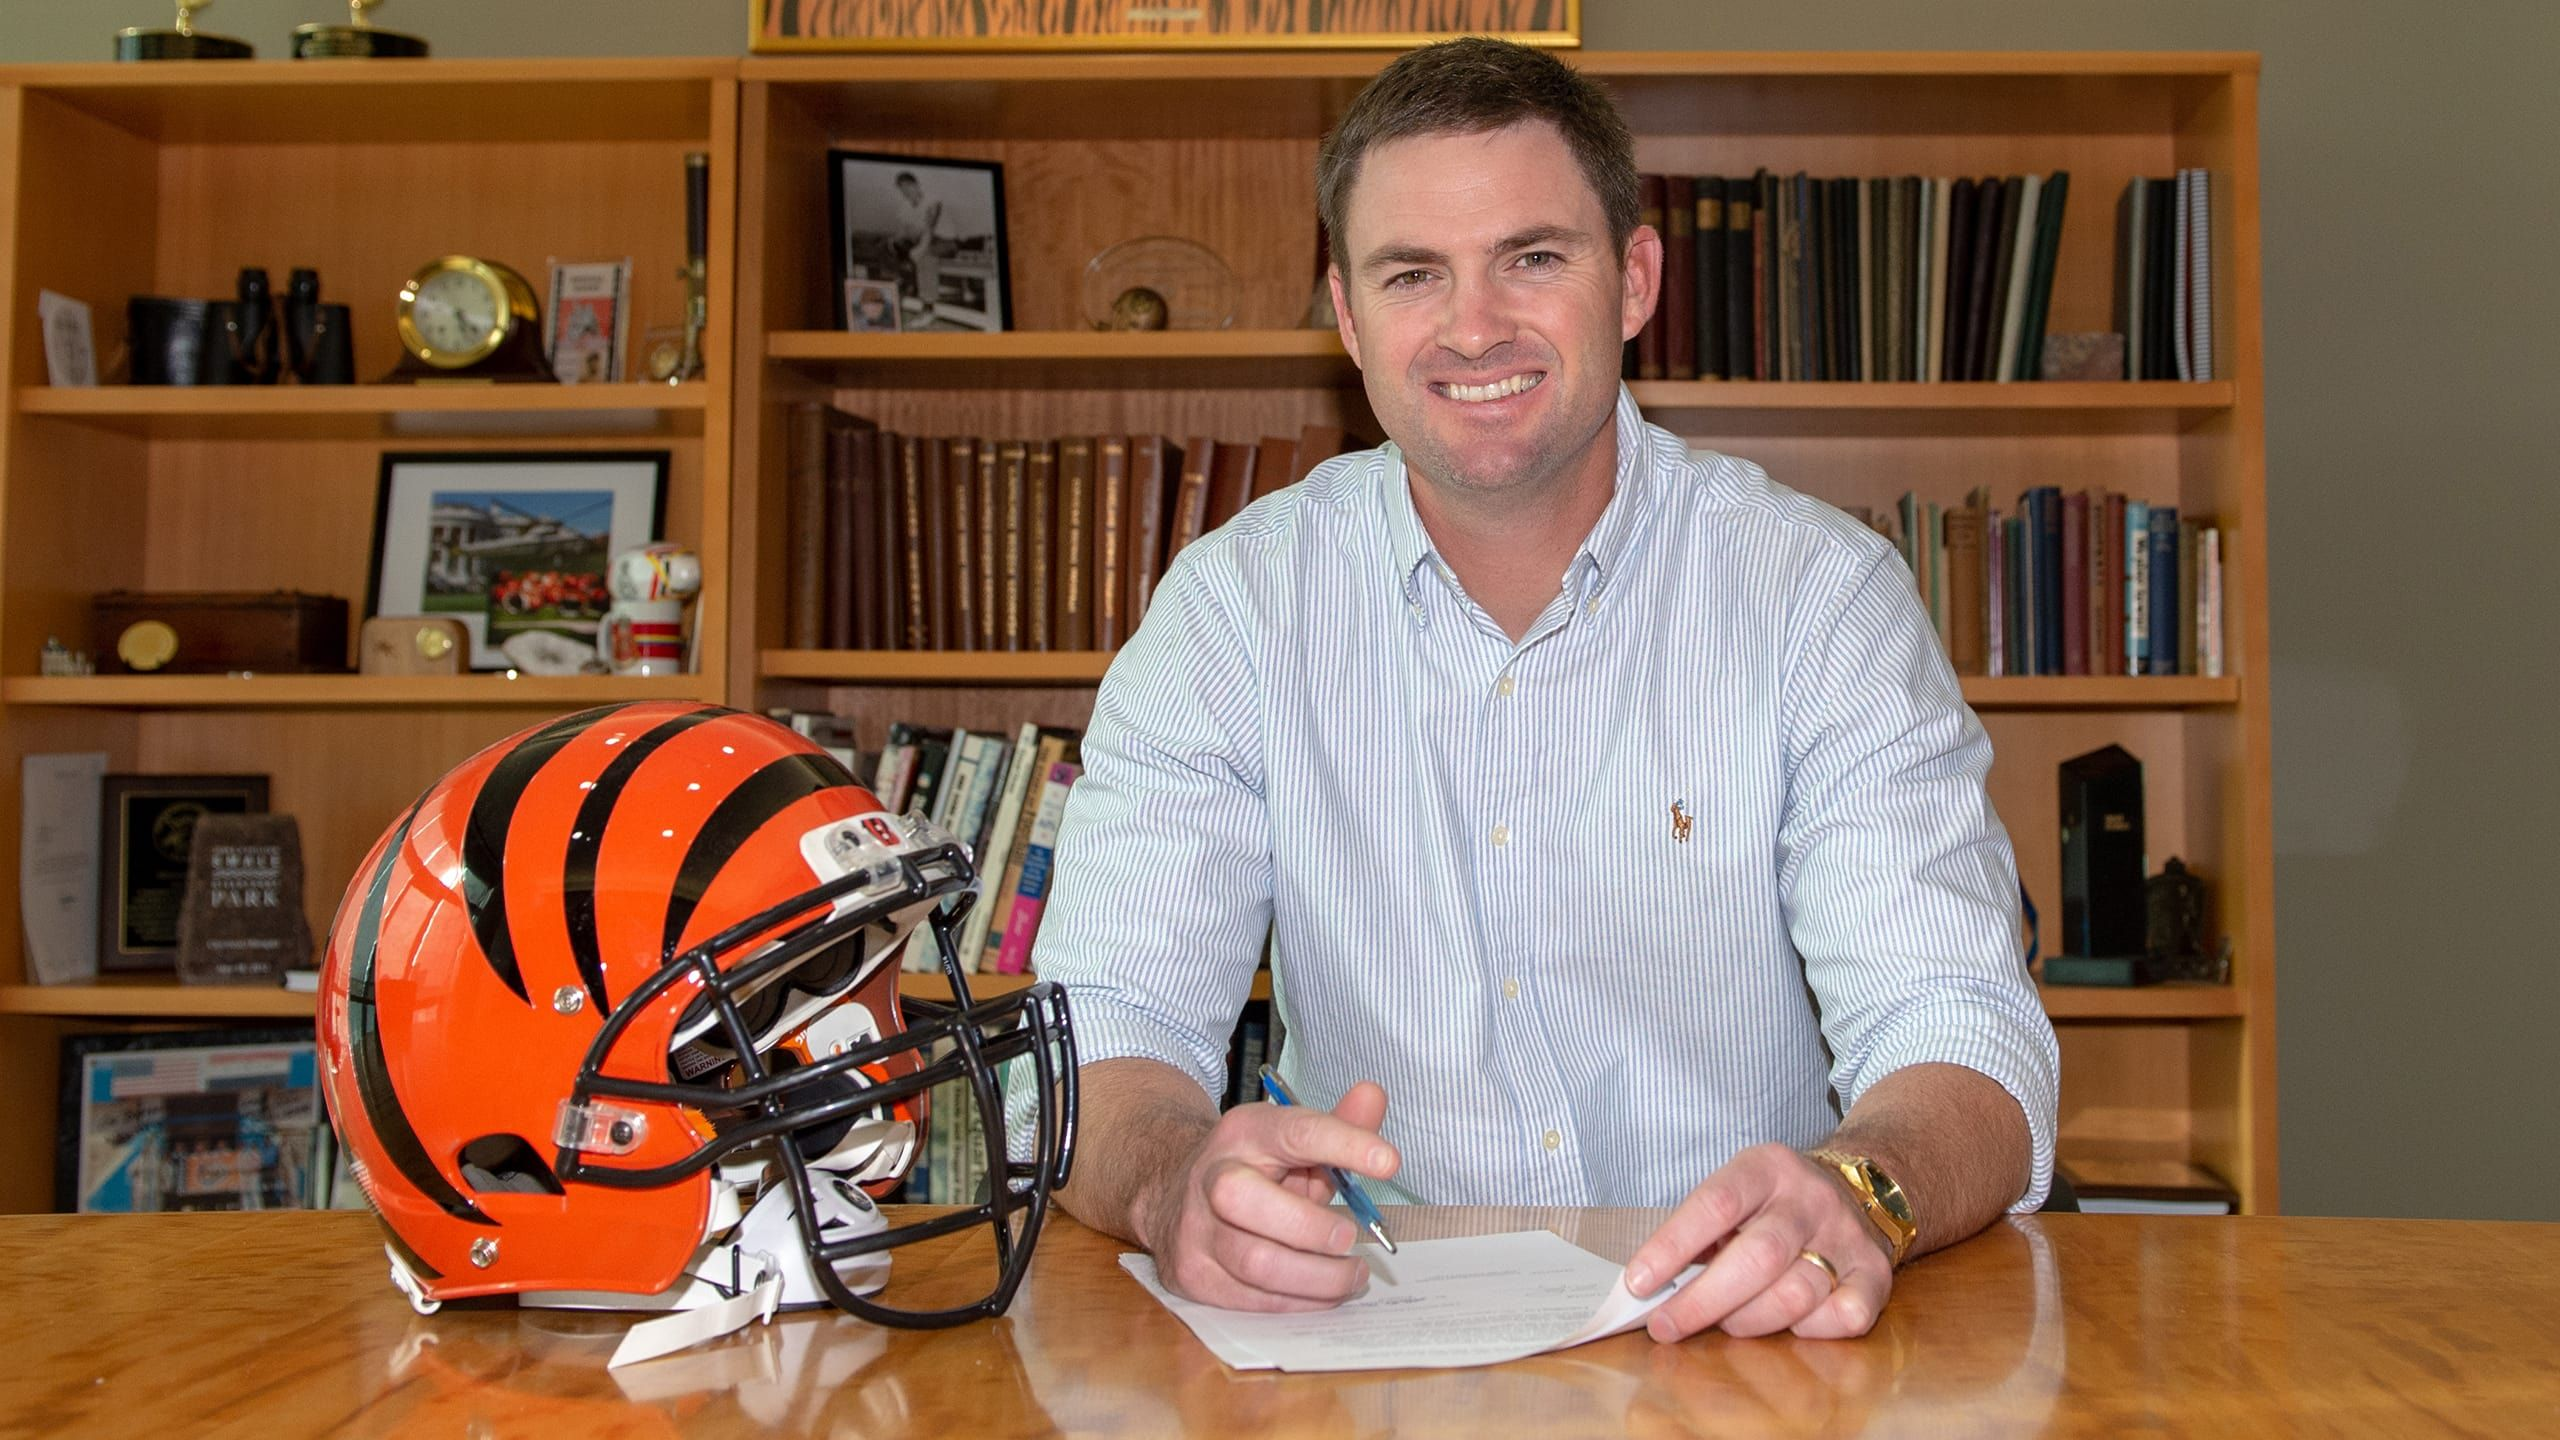 How Long Is Zac Taylors Contract With The Bengals